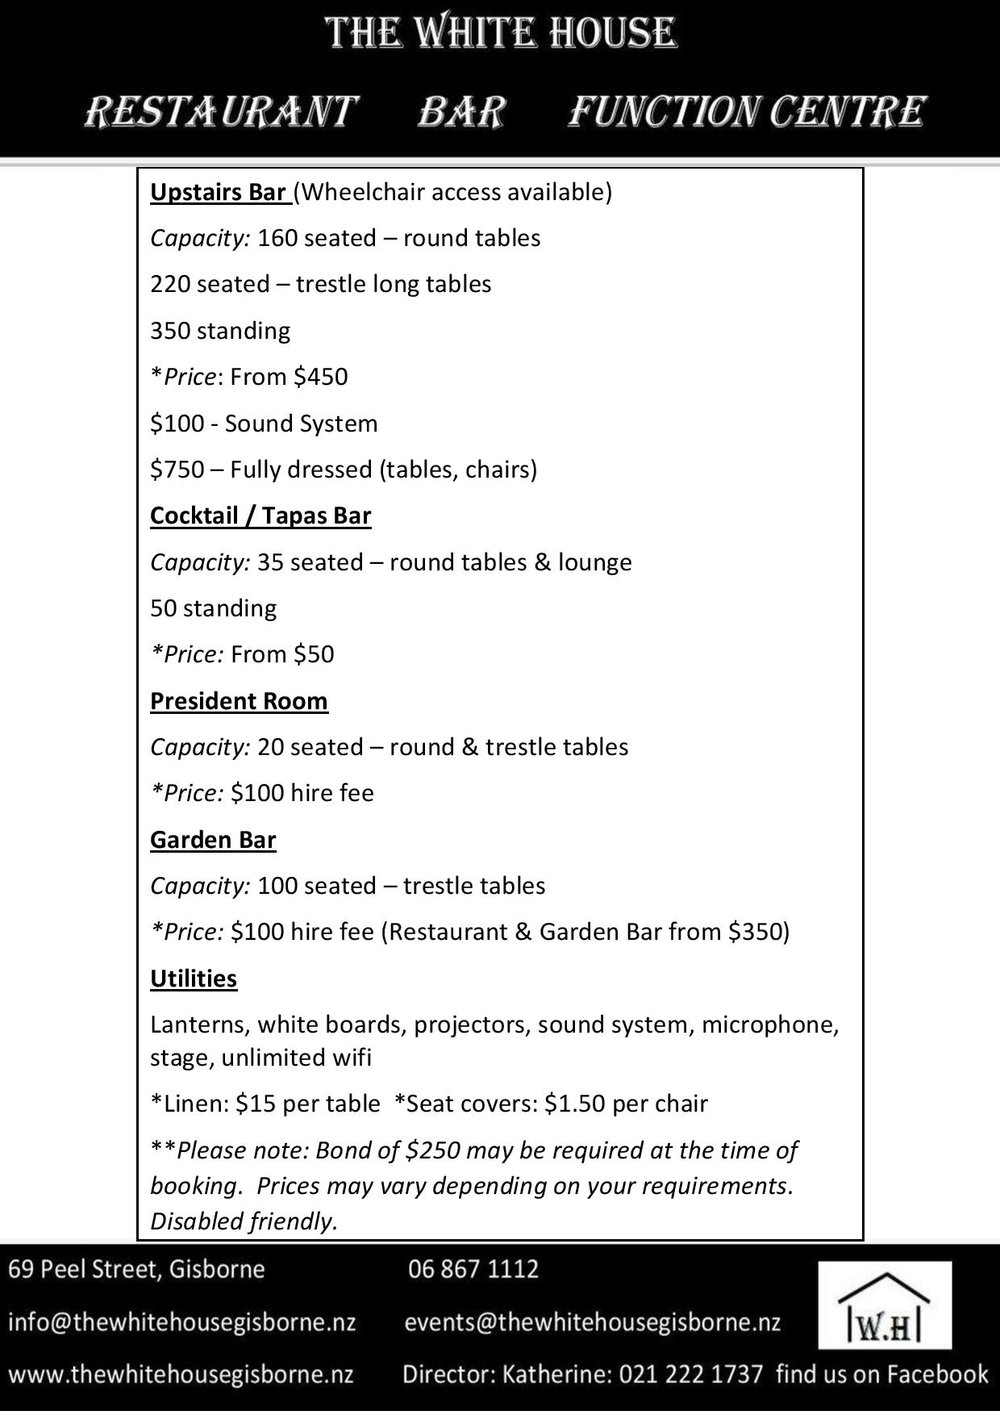 Download the  Function space hire fee PDF here